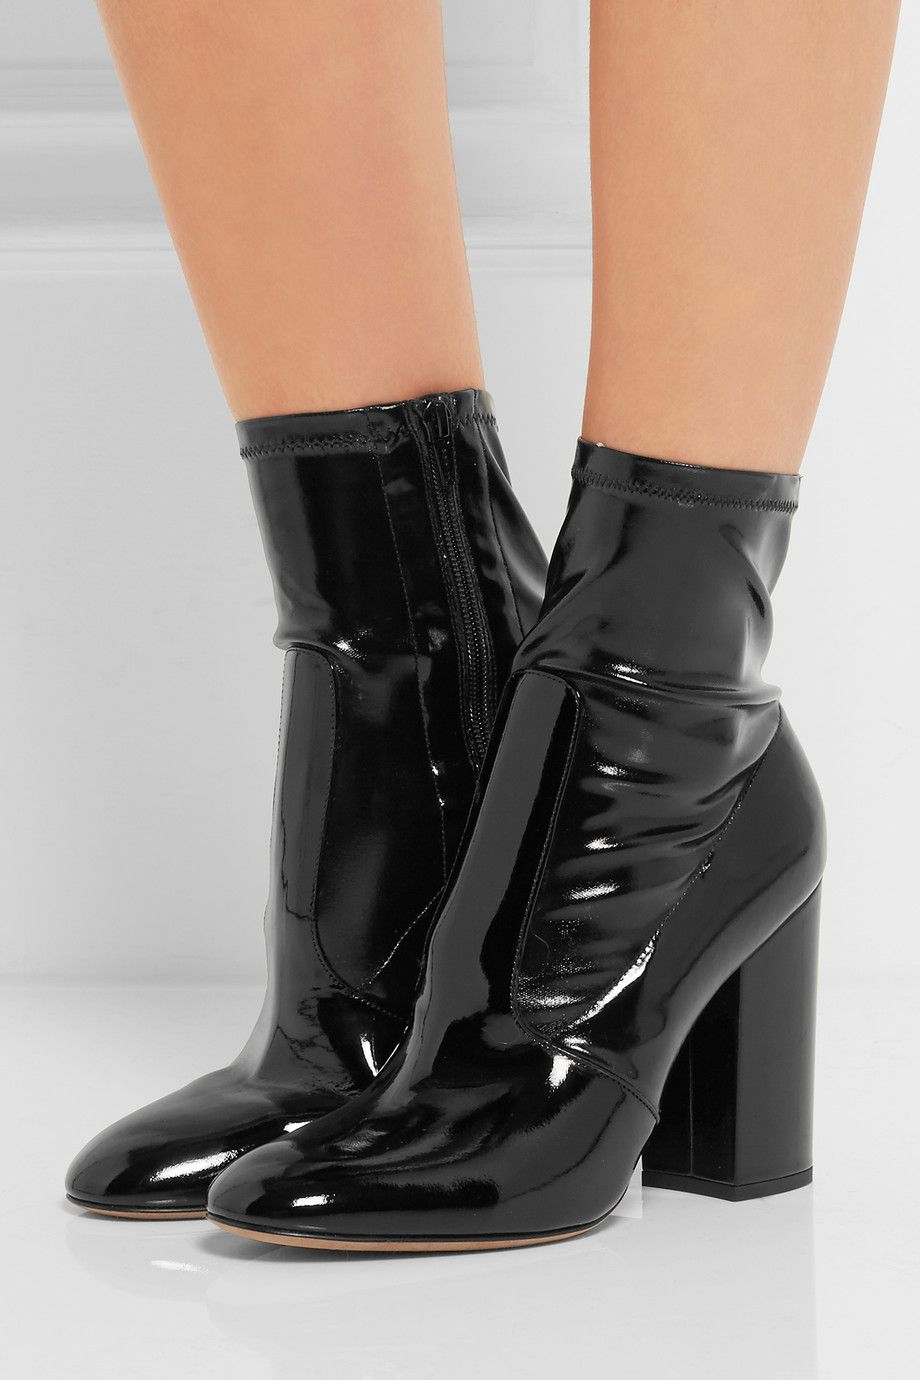 Valentino Patent Leather Ankle Boots Net A Porter Com